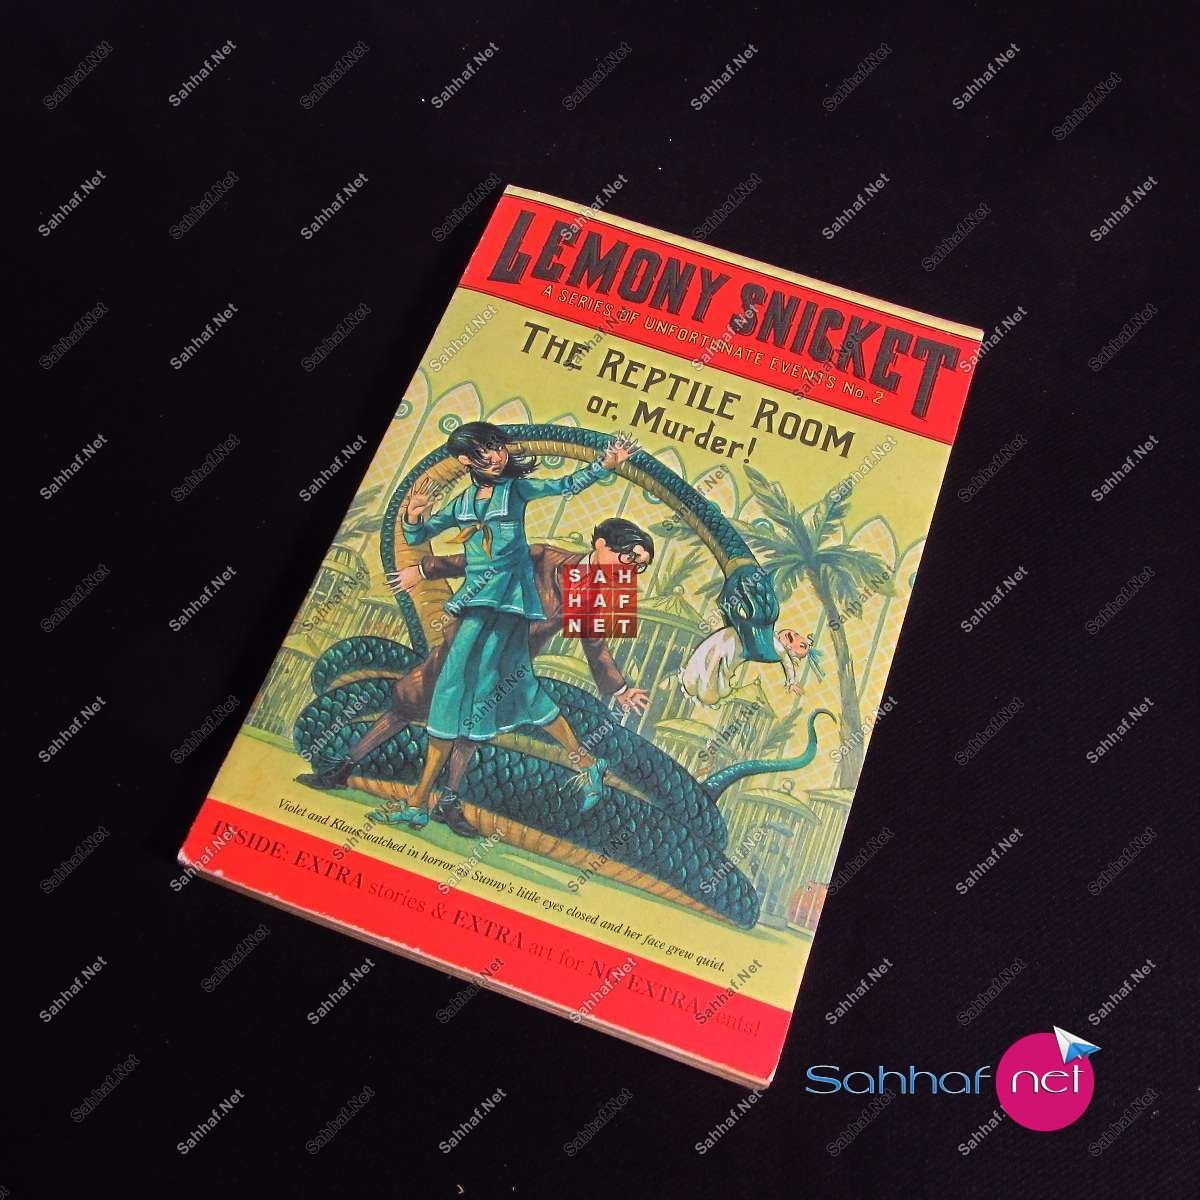 THE REPTILE ROOM – Lemony Snicket Kitap